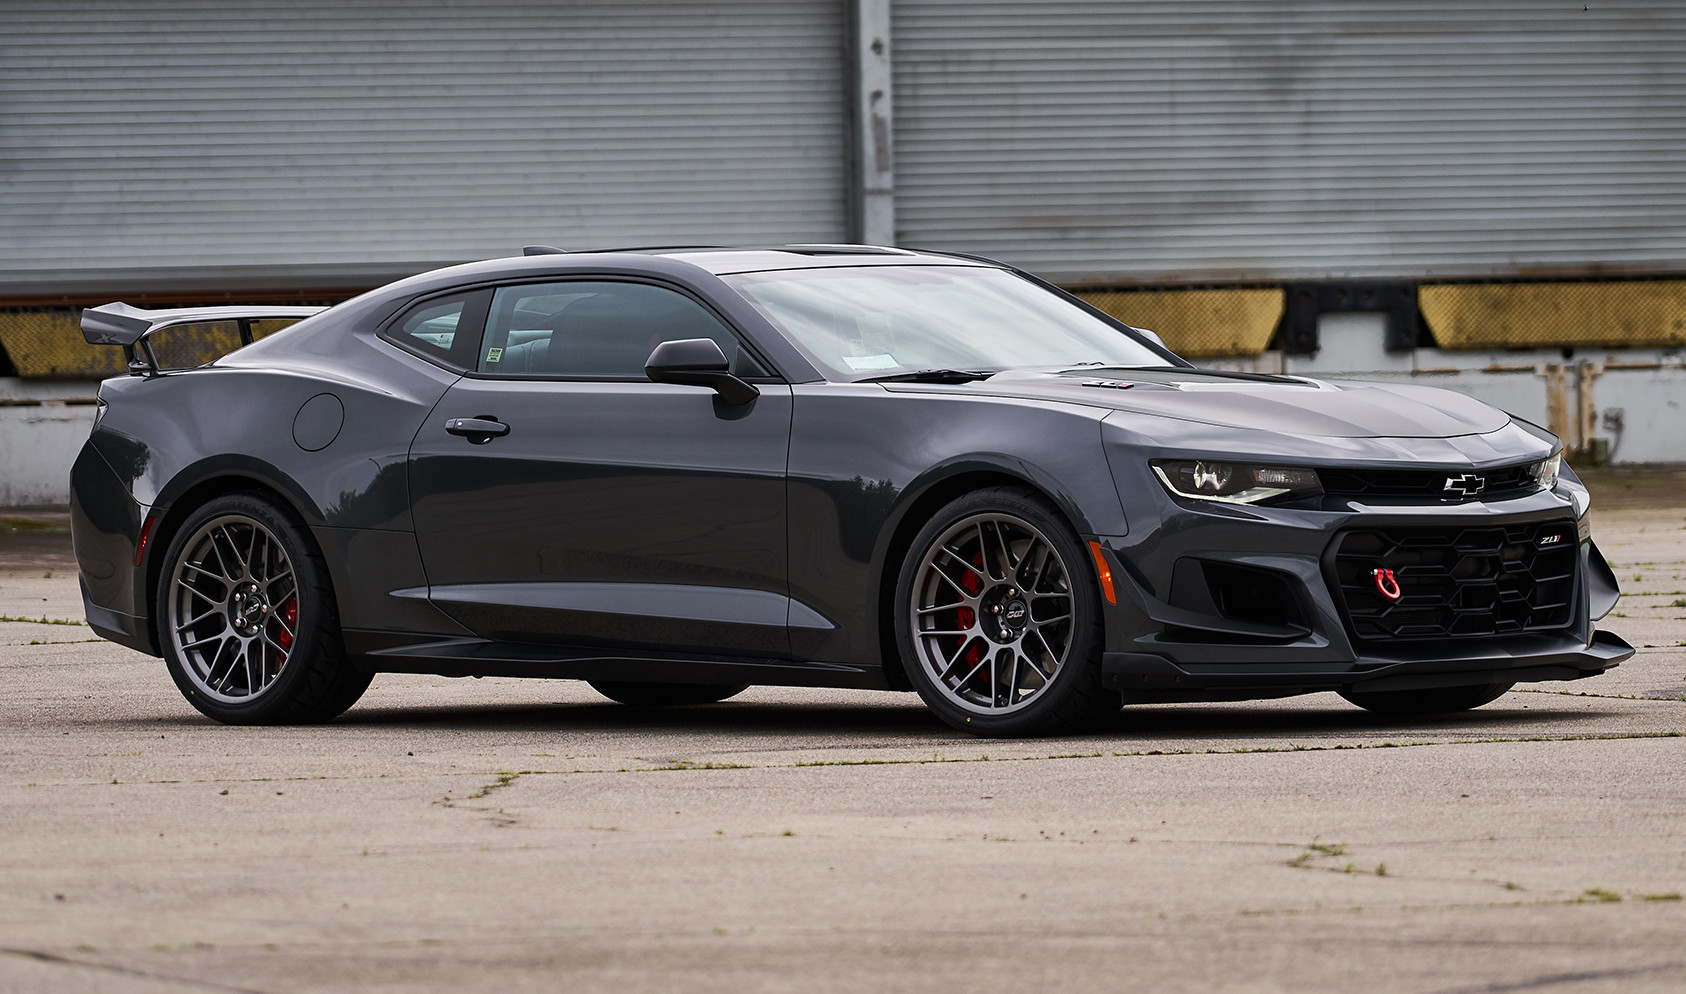 "6th Gen ZL1 1LE Non-Rotable Square Fitment<br />Wheels: Anthracite ARC-8 19x11"" ET11 front, 19x11"" ET43 rear<br />Tires:  305/30-19 Bridgestone RE71R"